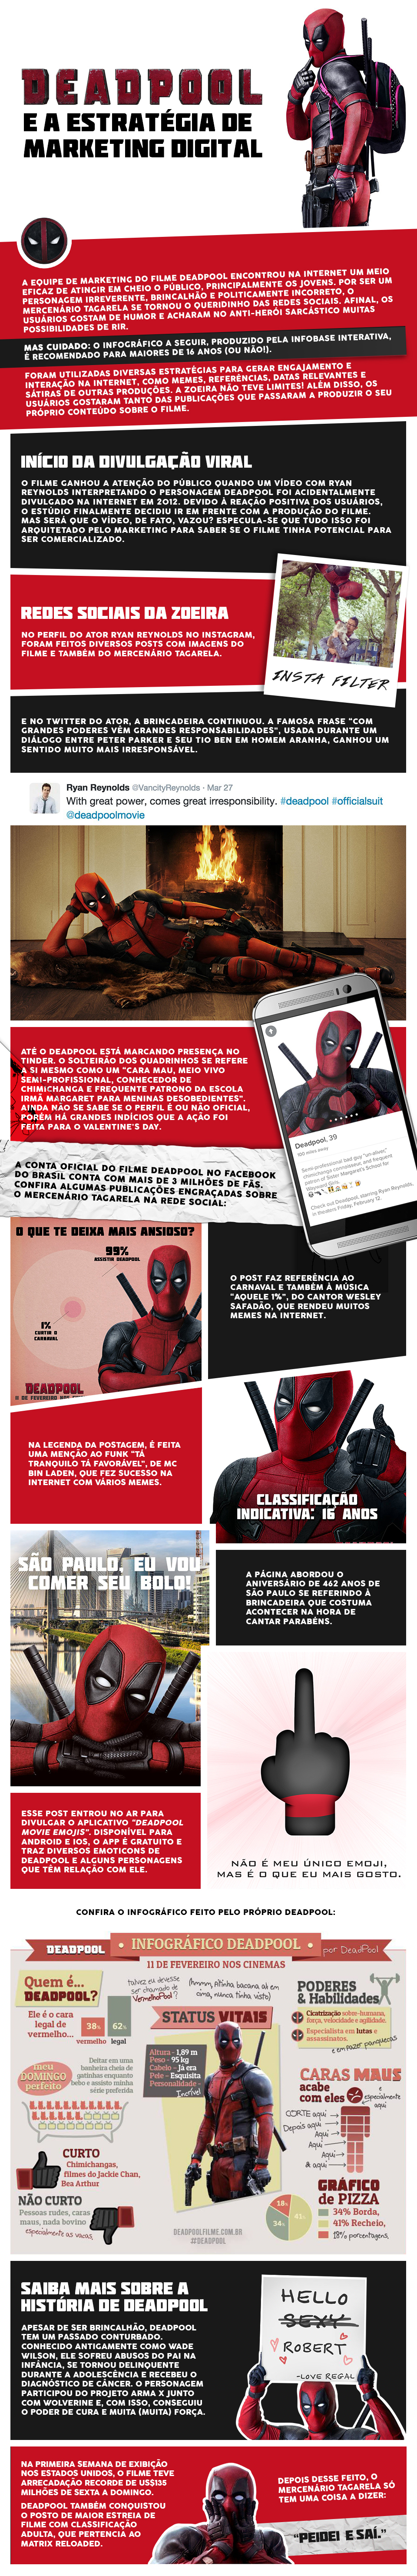 INFOGRAFICO-deadpool2_PNG